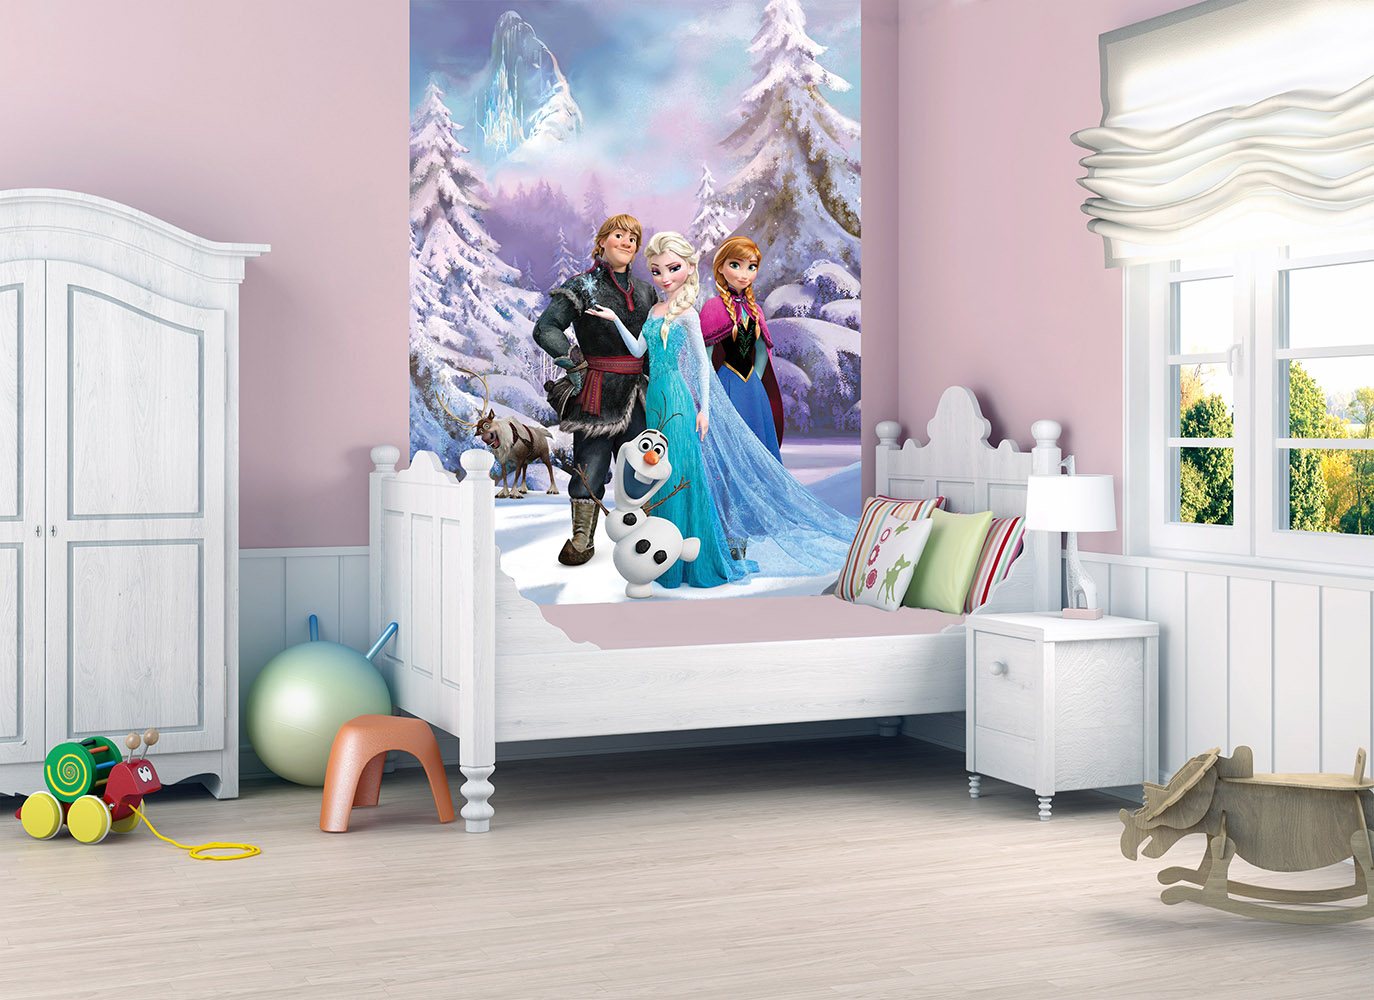 Official Disney Frozen Deco Mural Wallpaper